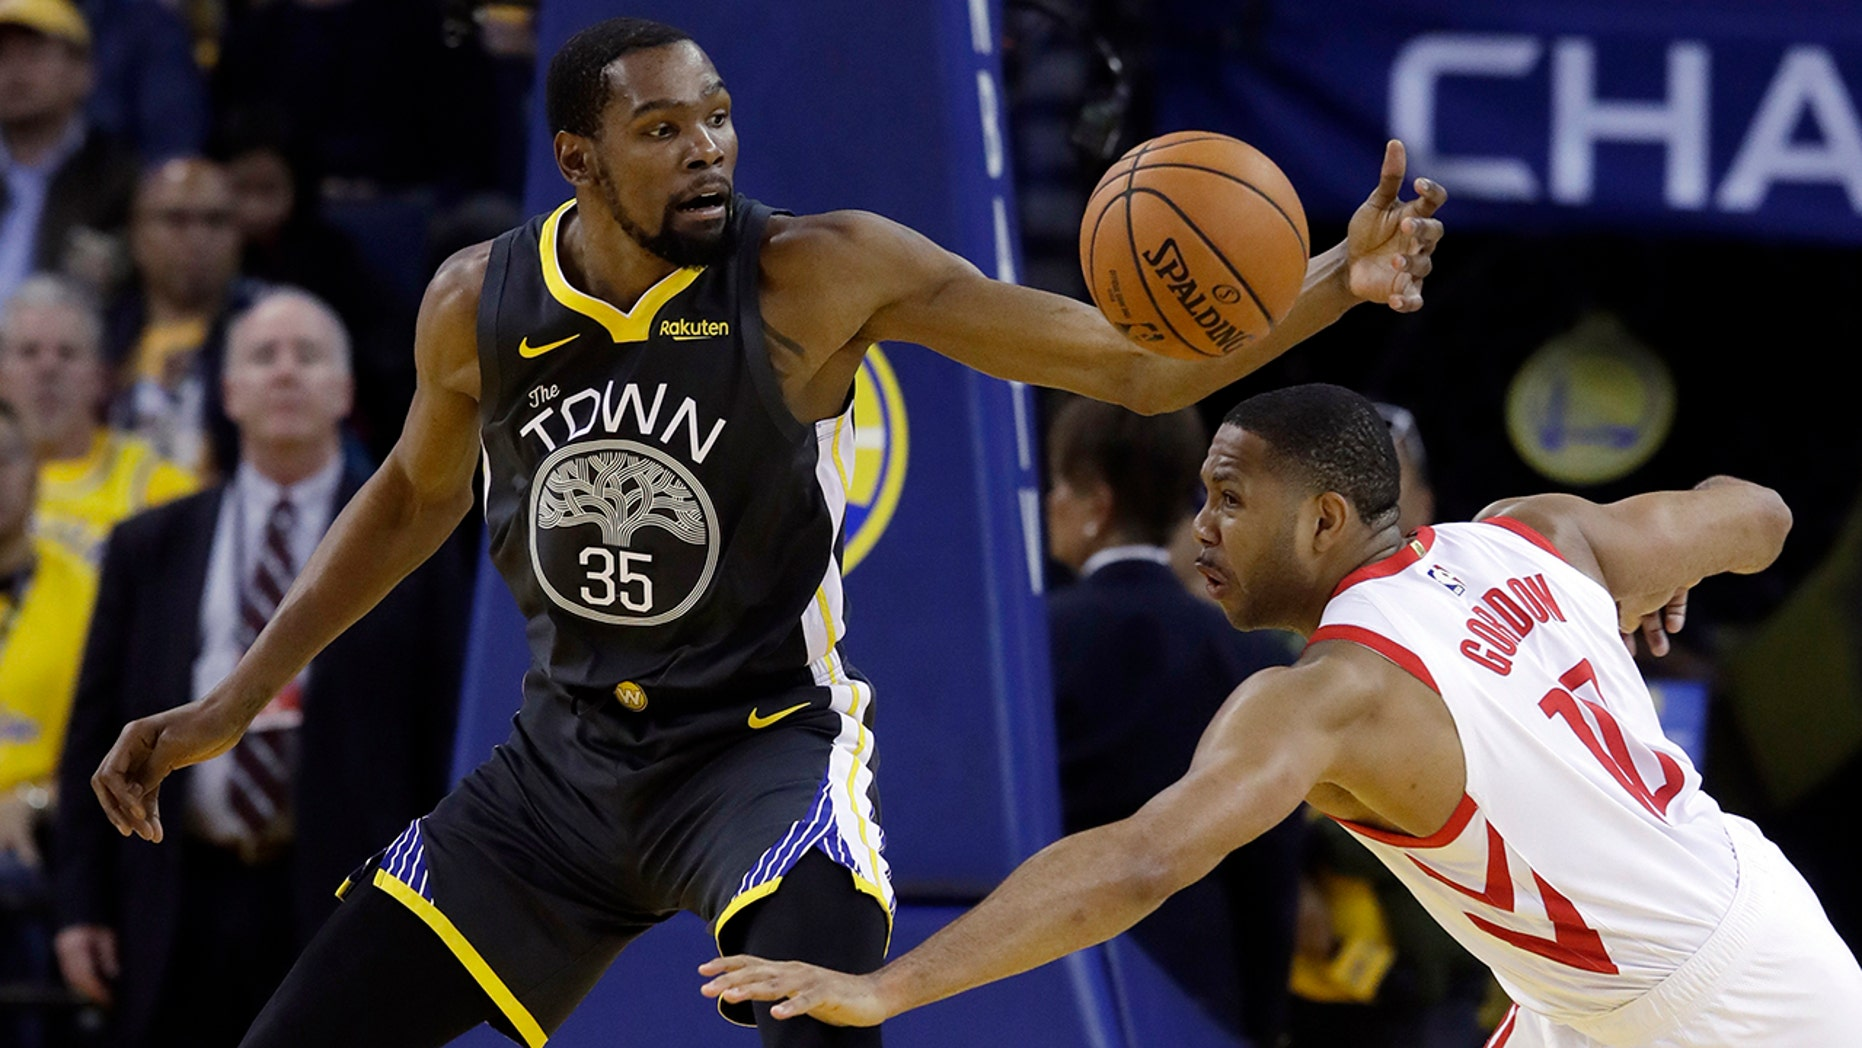 Golden State Warriors' Kevin Durant (35) is defended by Houston Rockets' Eric Gordon during the first half of Game 2 of a second-round NBA basketball playoff series in Oakland, Calif., Tuesday, April 30, 2019. (AP Photo/Jeff Chiu)